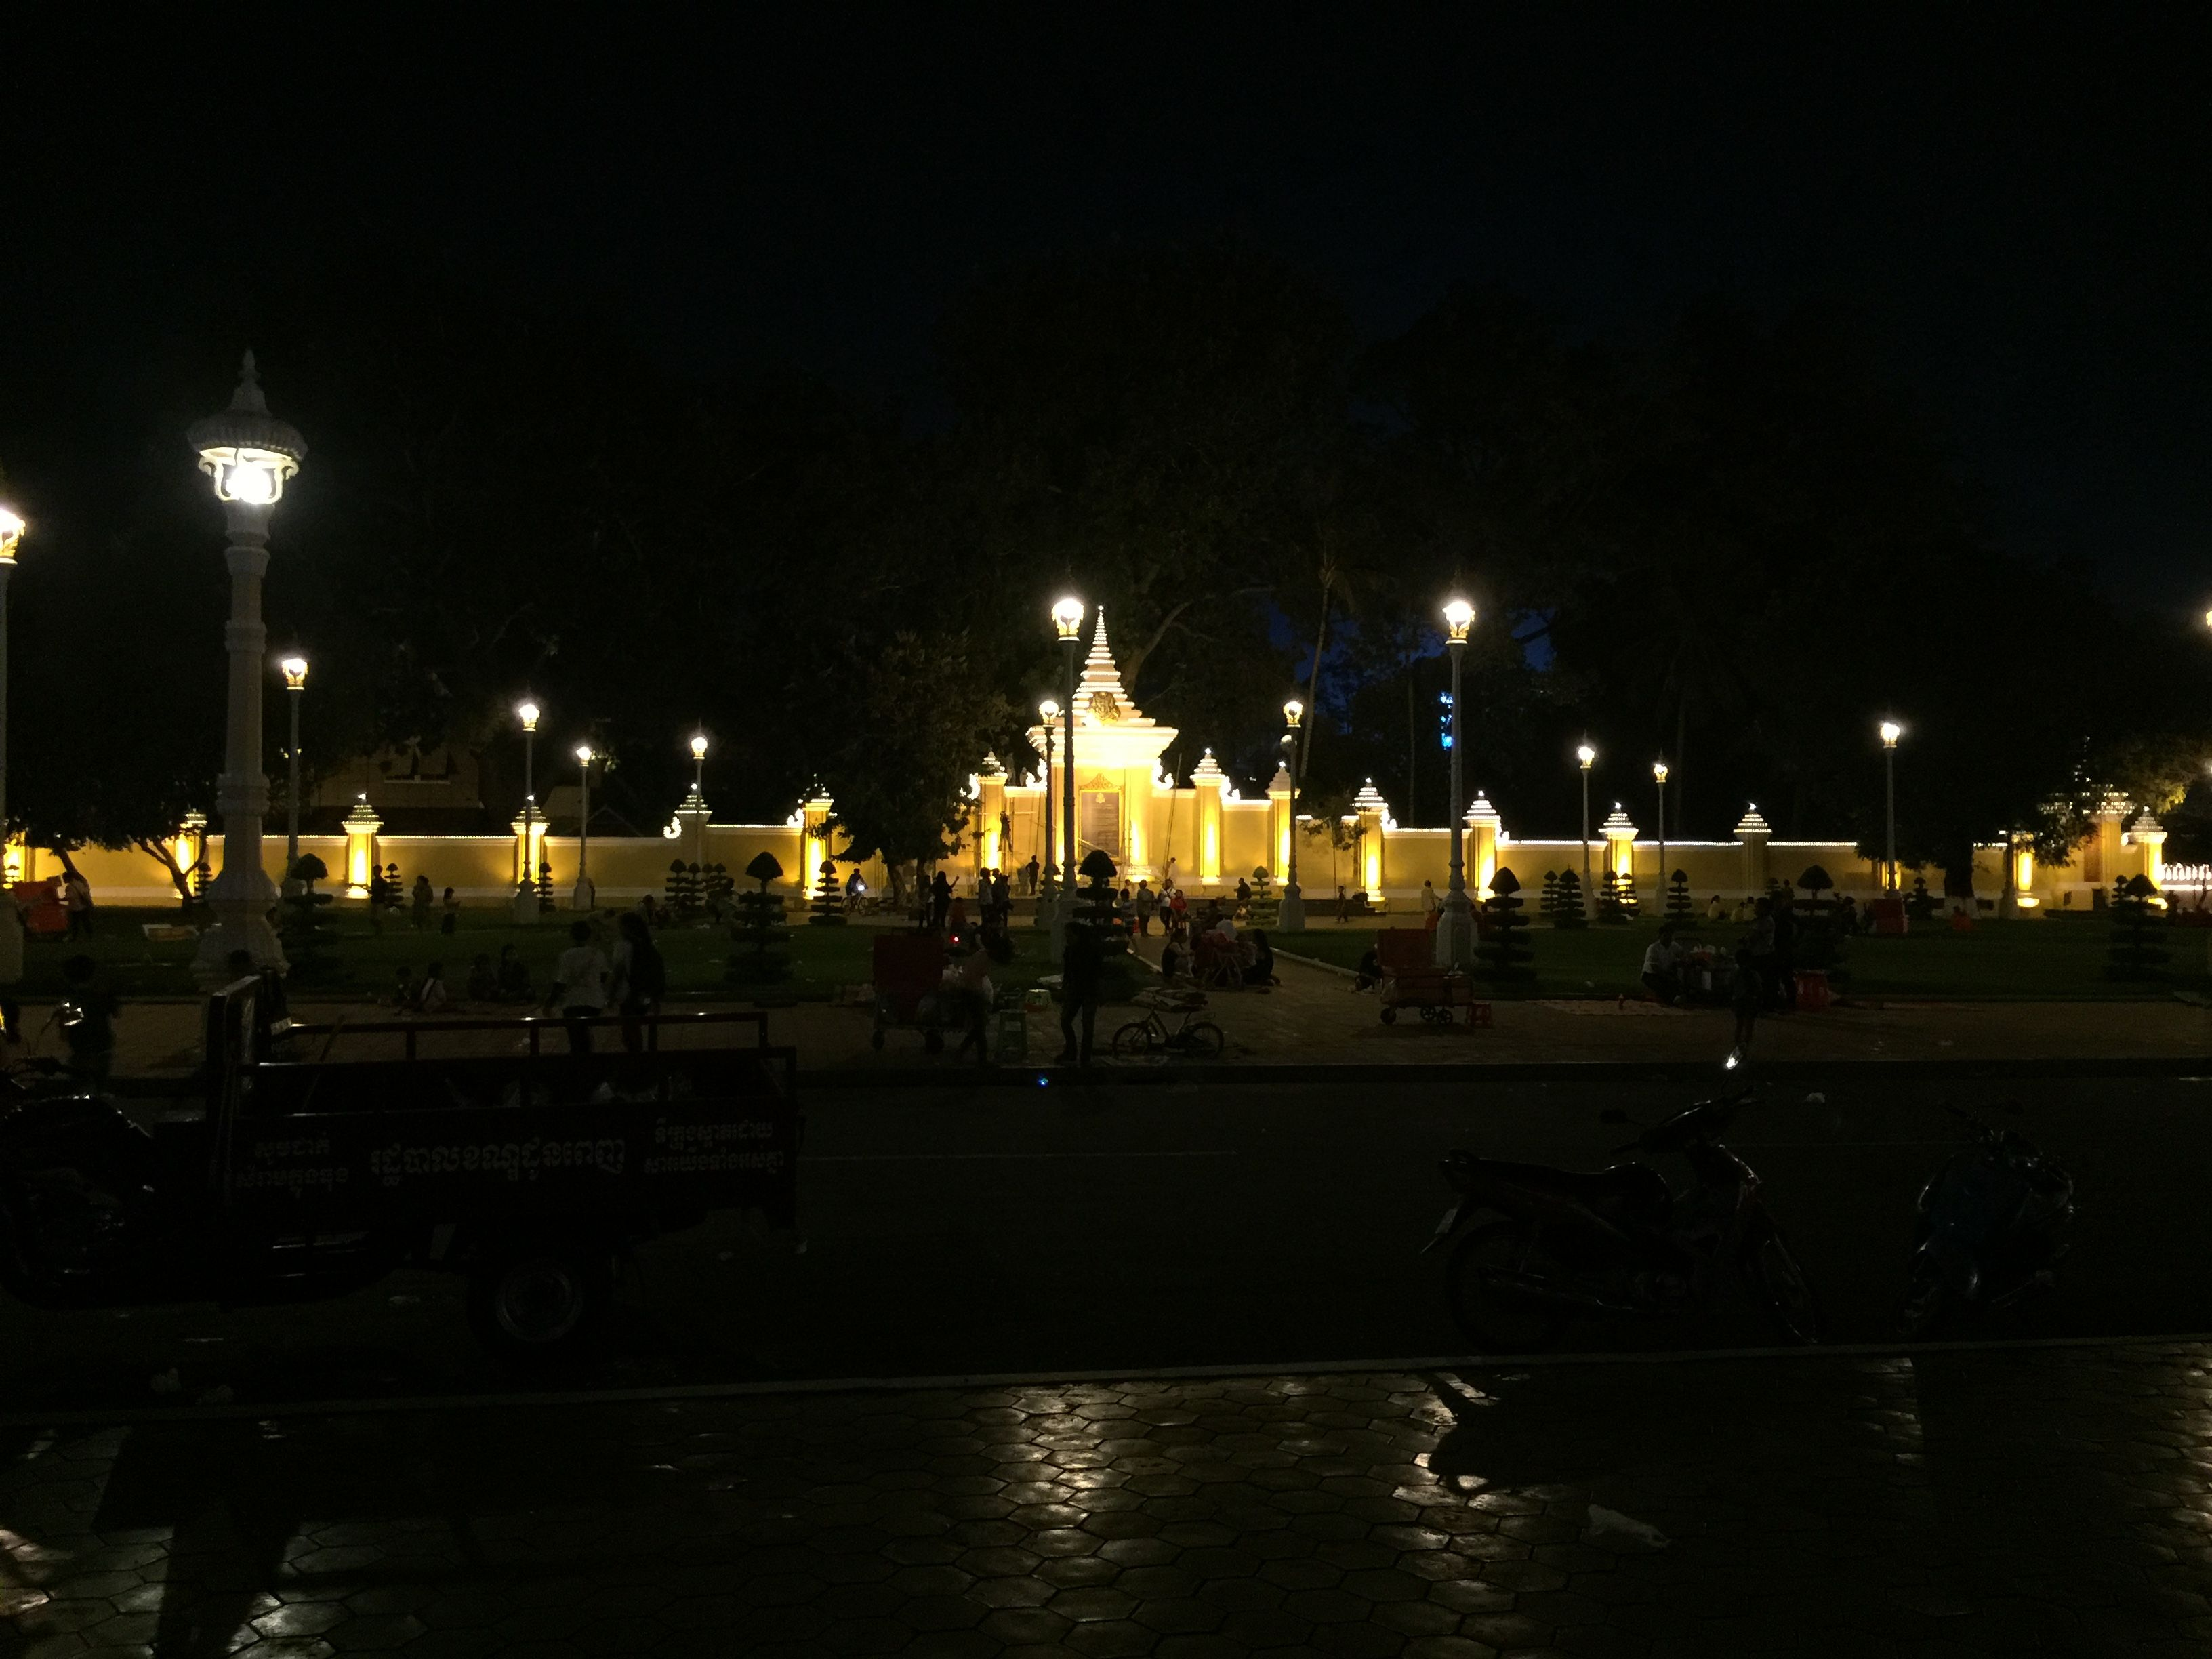 Kings Palace, Phnom Penh. October 2017. (With images